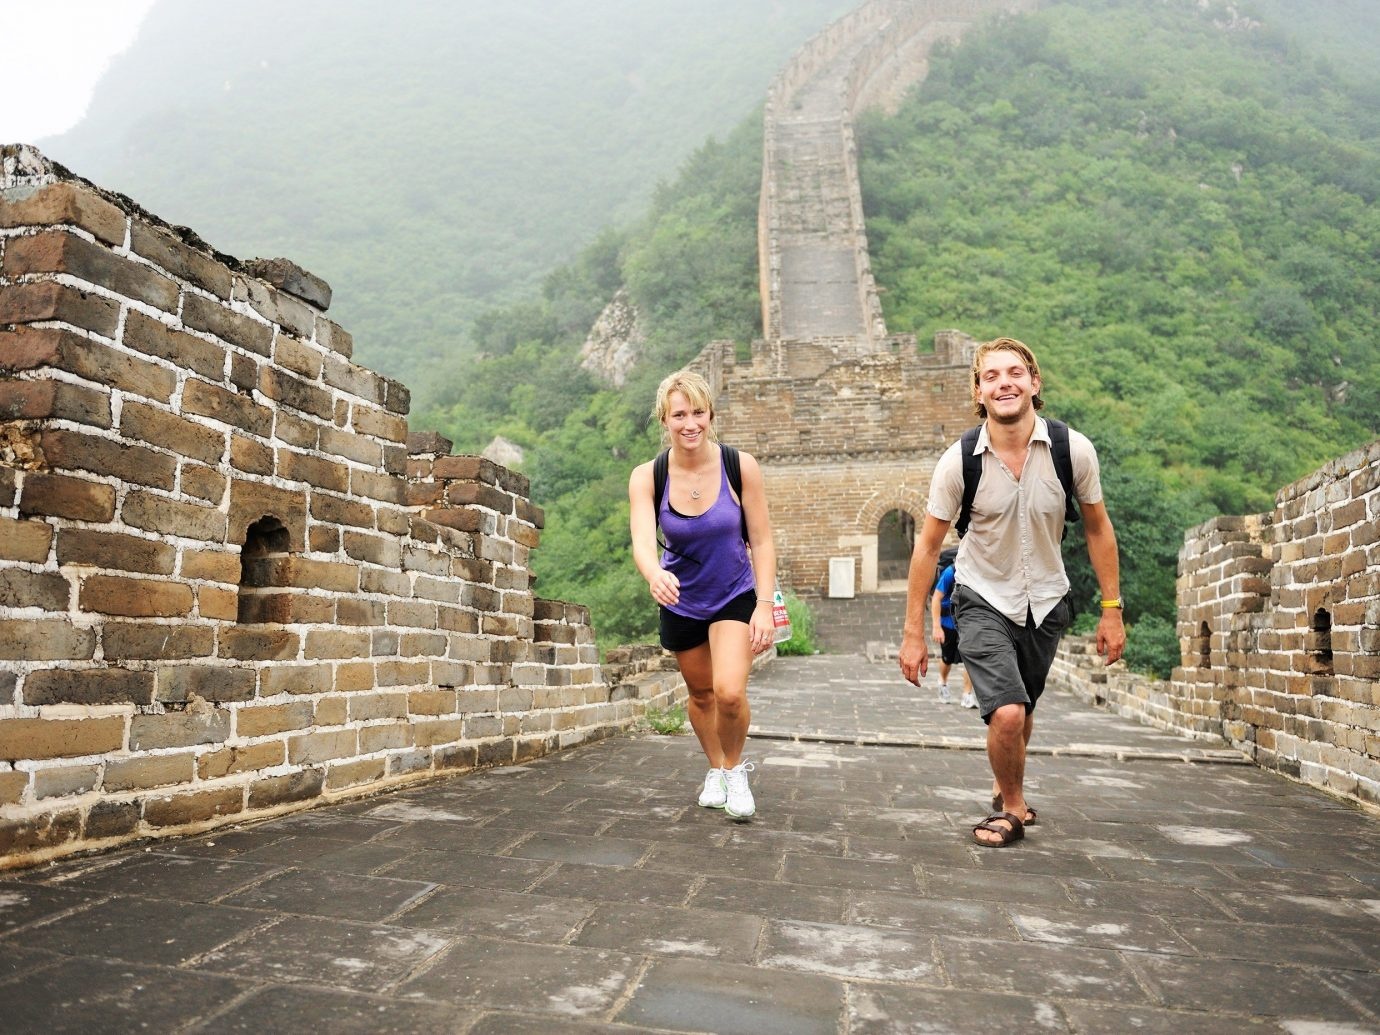 Offbeat mountain outdoor ground archaeological site stone tourism vacation tours temple walking brick